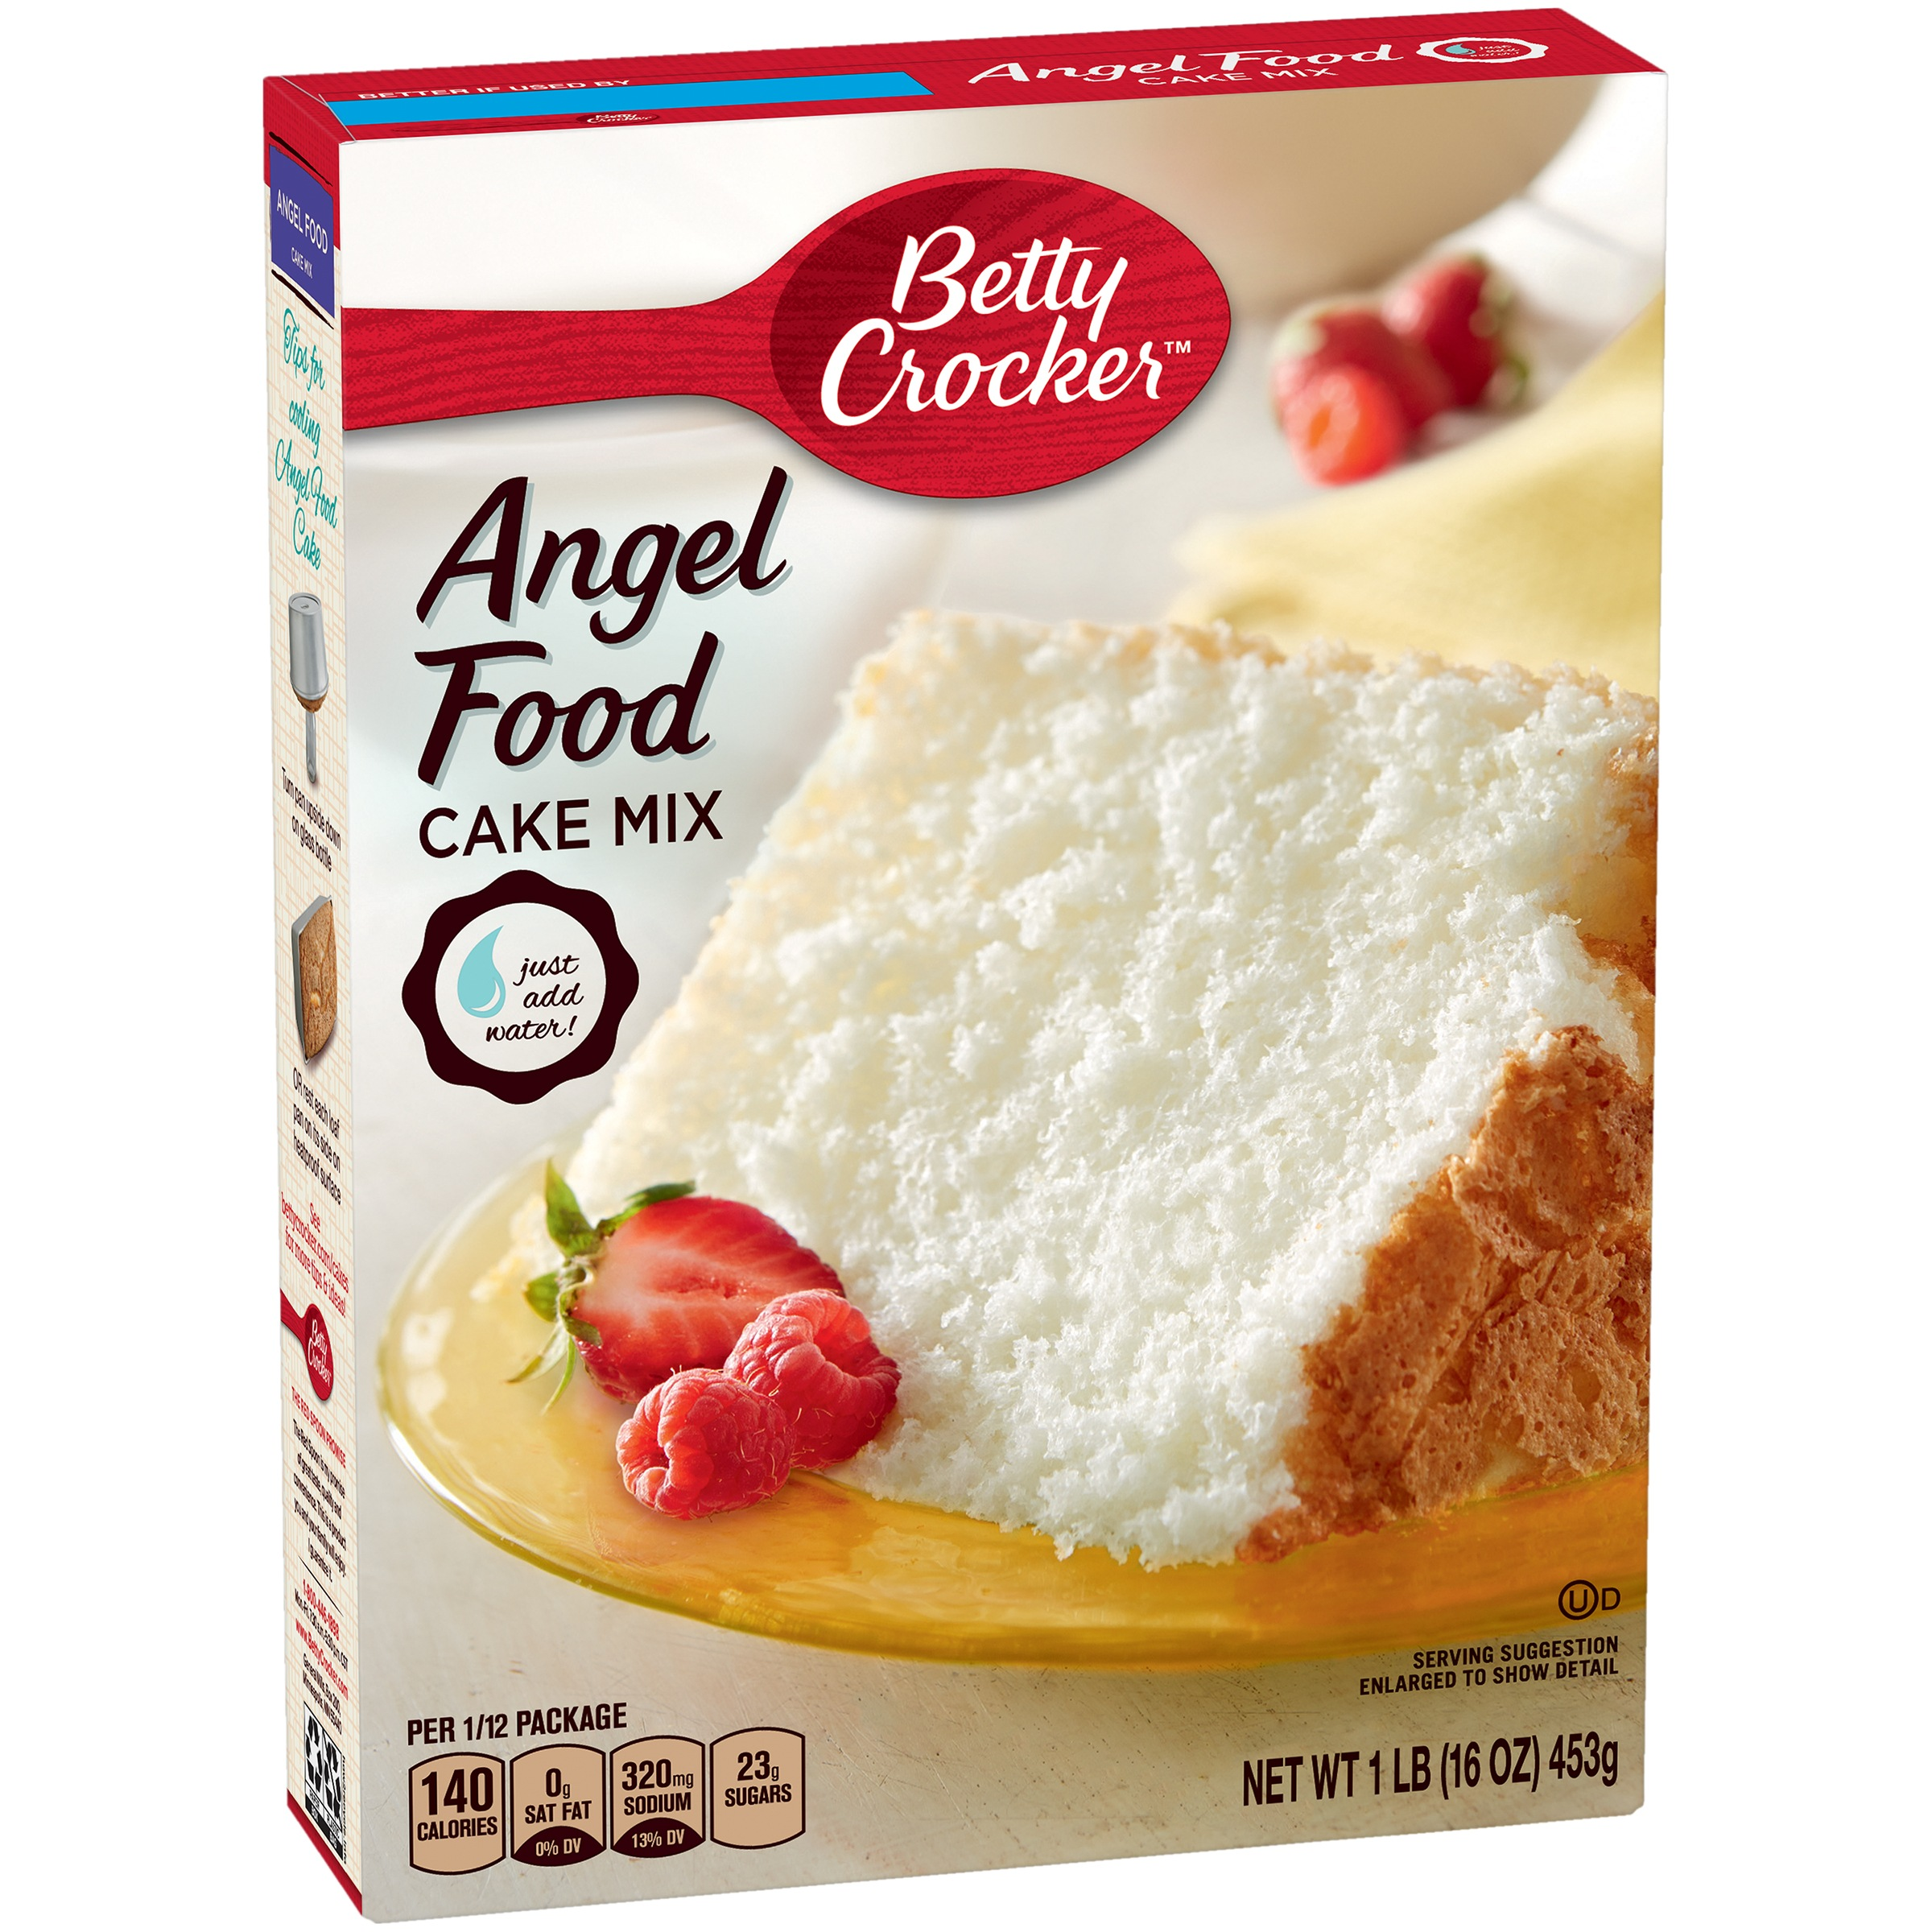 Betty Crocker Super Moist Fat Free Cake Mix Angel Food 16.0 oz Box by General Mills Sales, Inc.